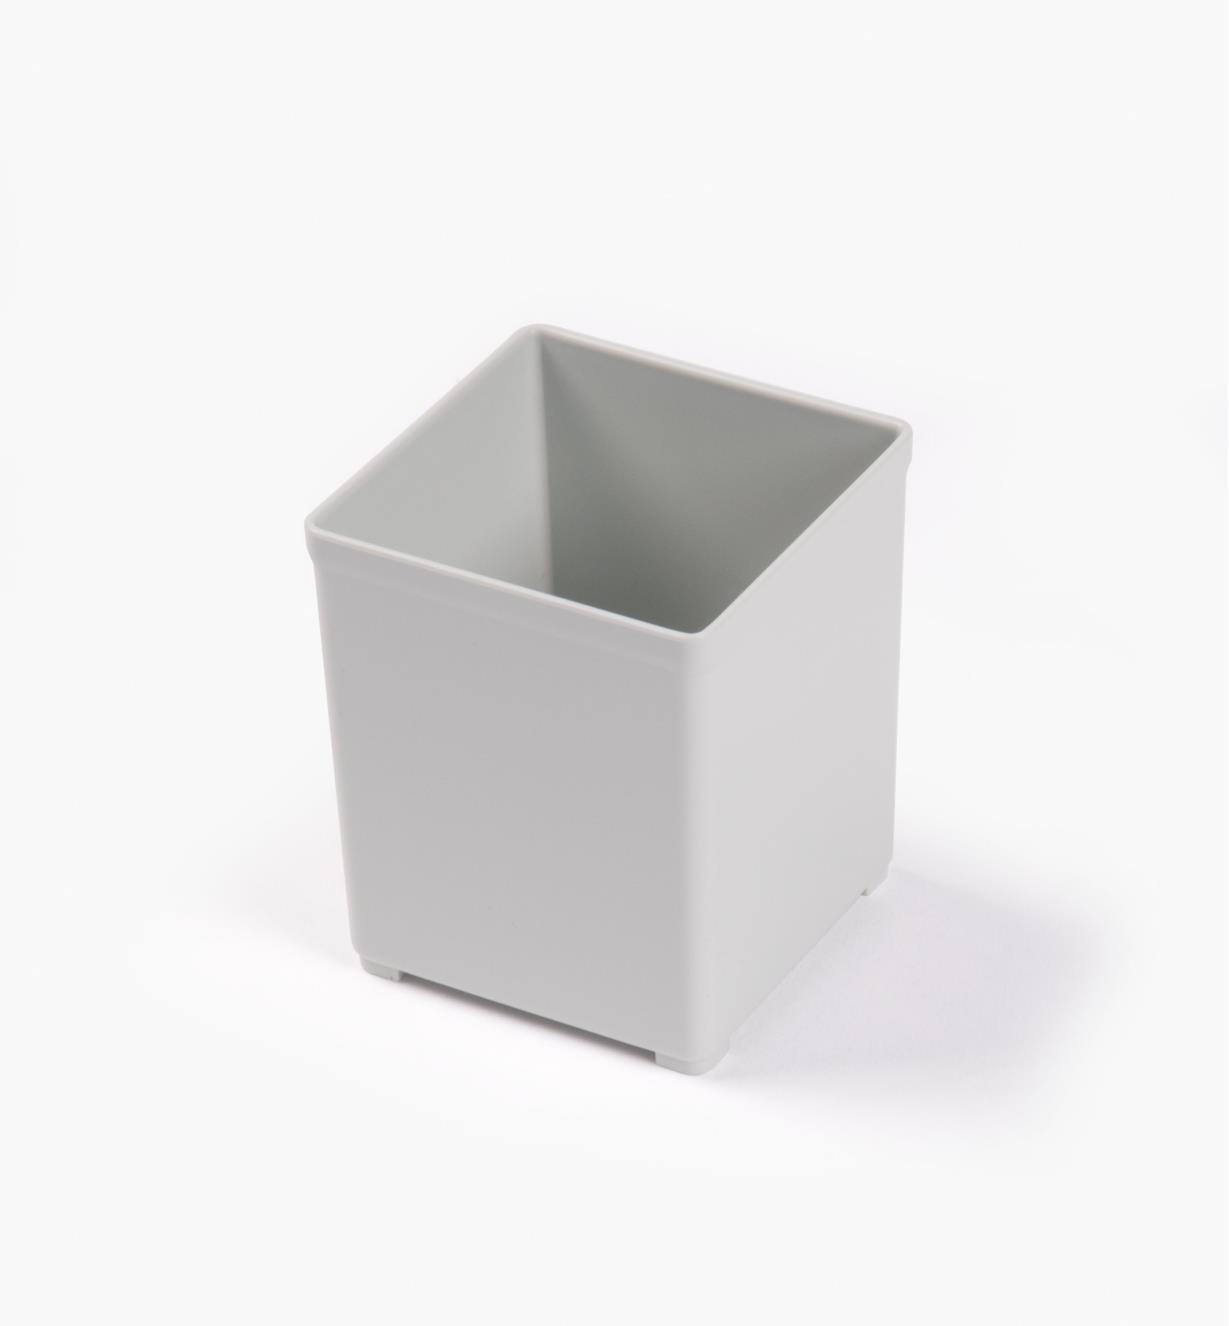 68K4517 - Extra 59mm x 59mm Small Bin for Systainer Storage Box, each